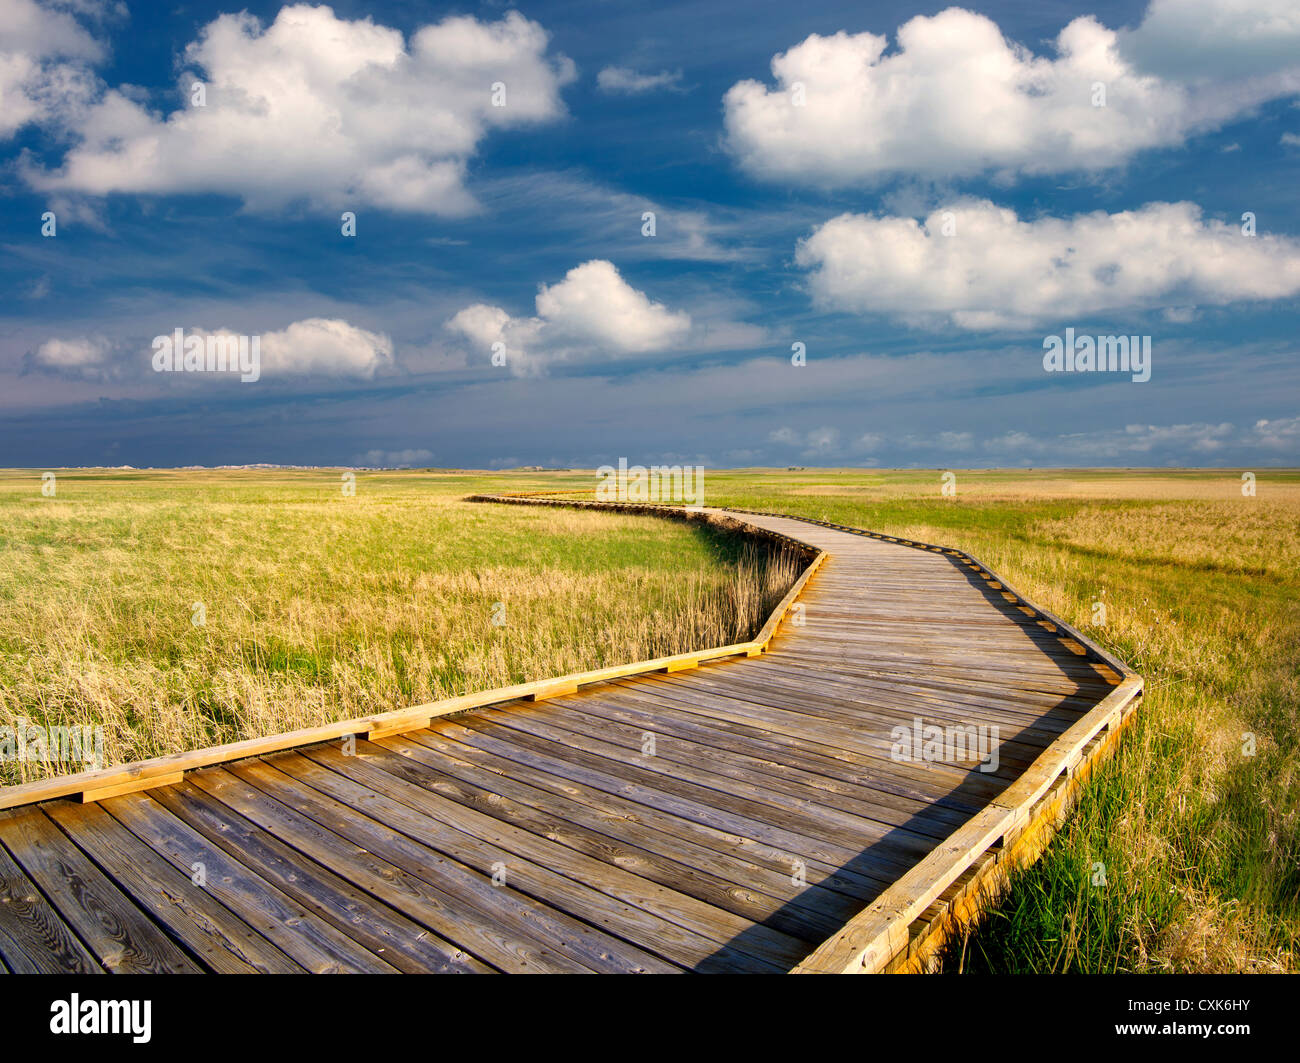 Pathway and clouds with grassland in Badlands National Park, South Dakota. - Stock Image